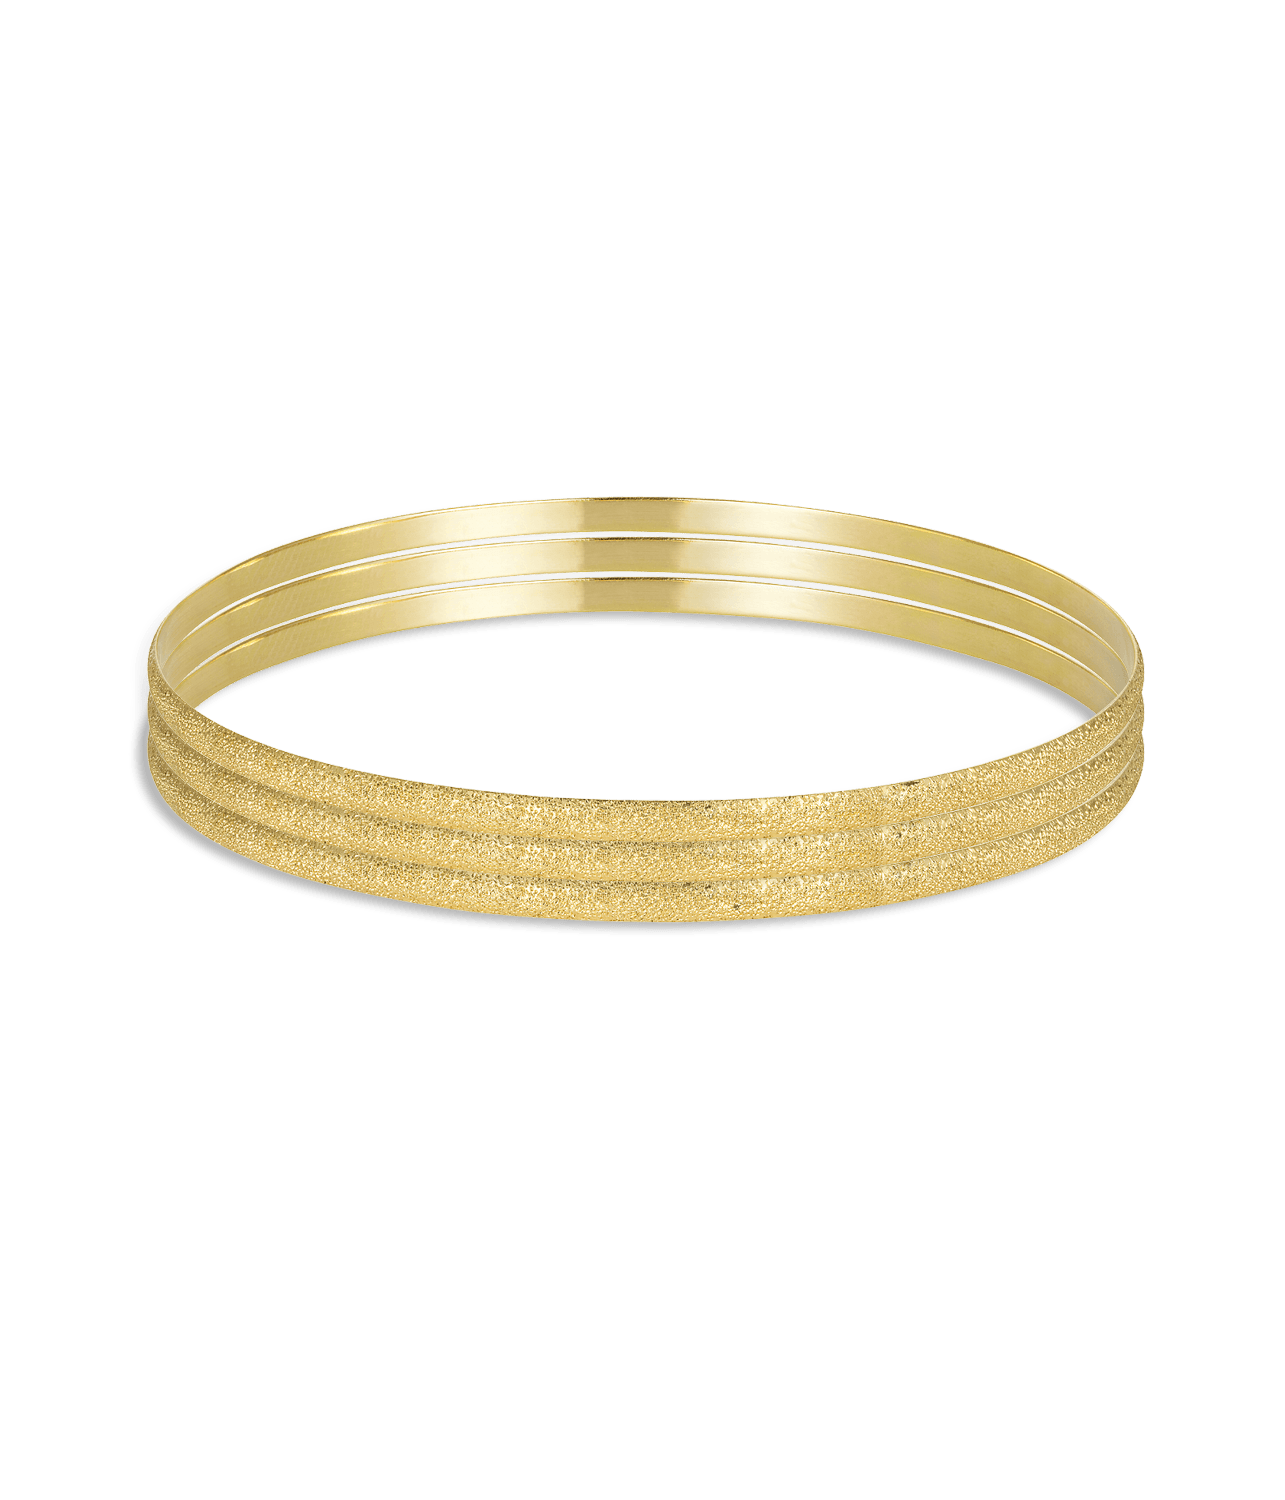 Carolina Bucci Florentine Finish Flat Bangle Set Yellow Gold